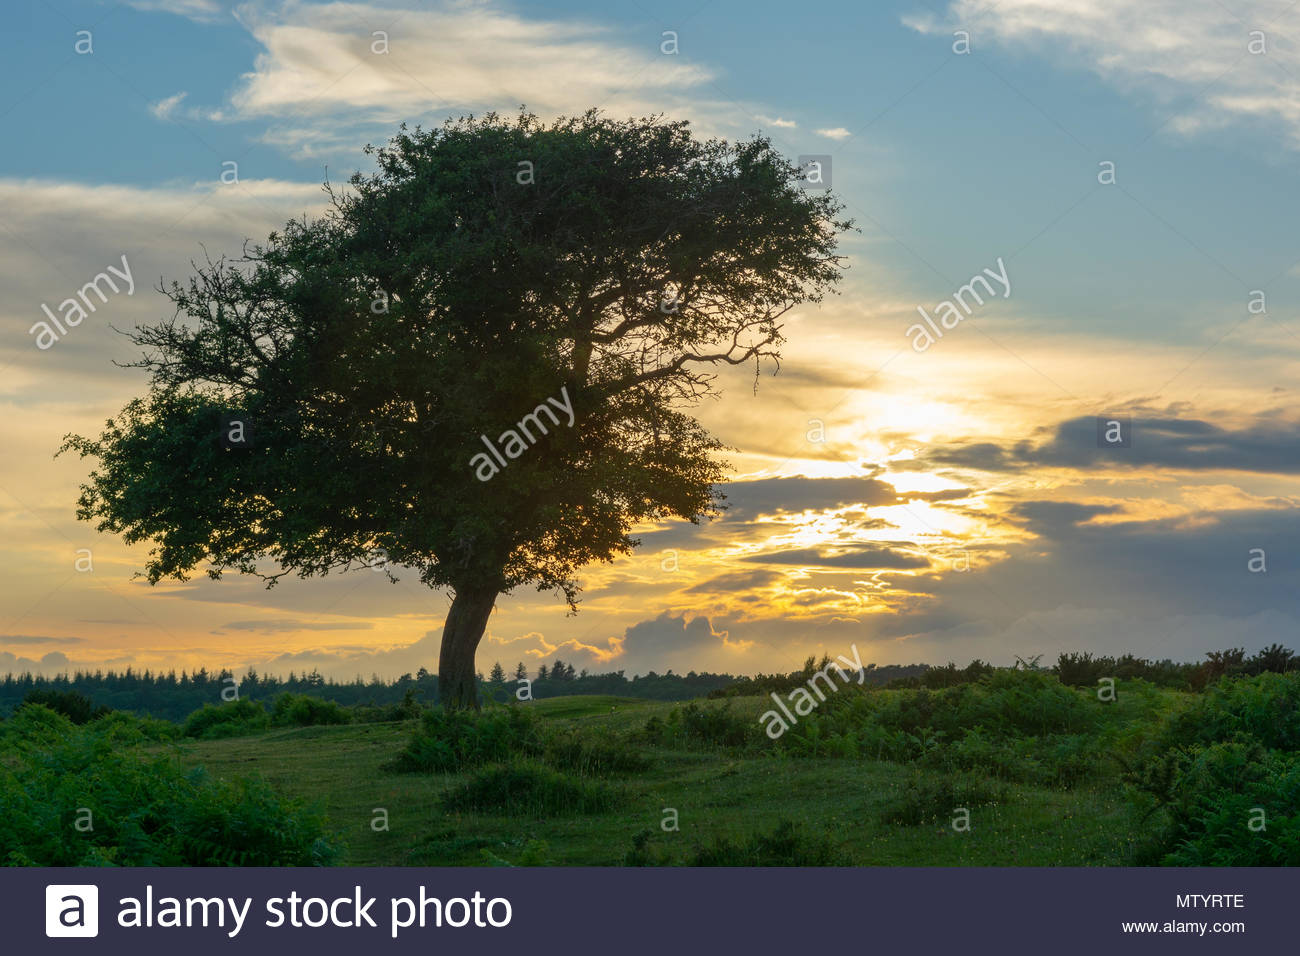 New Forest, Hampshire, England. Shower clouds and a golden sunset  behind a solitary tree which has been shaped by the prevailing wind. - Stock Image